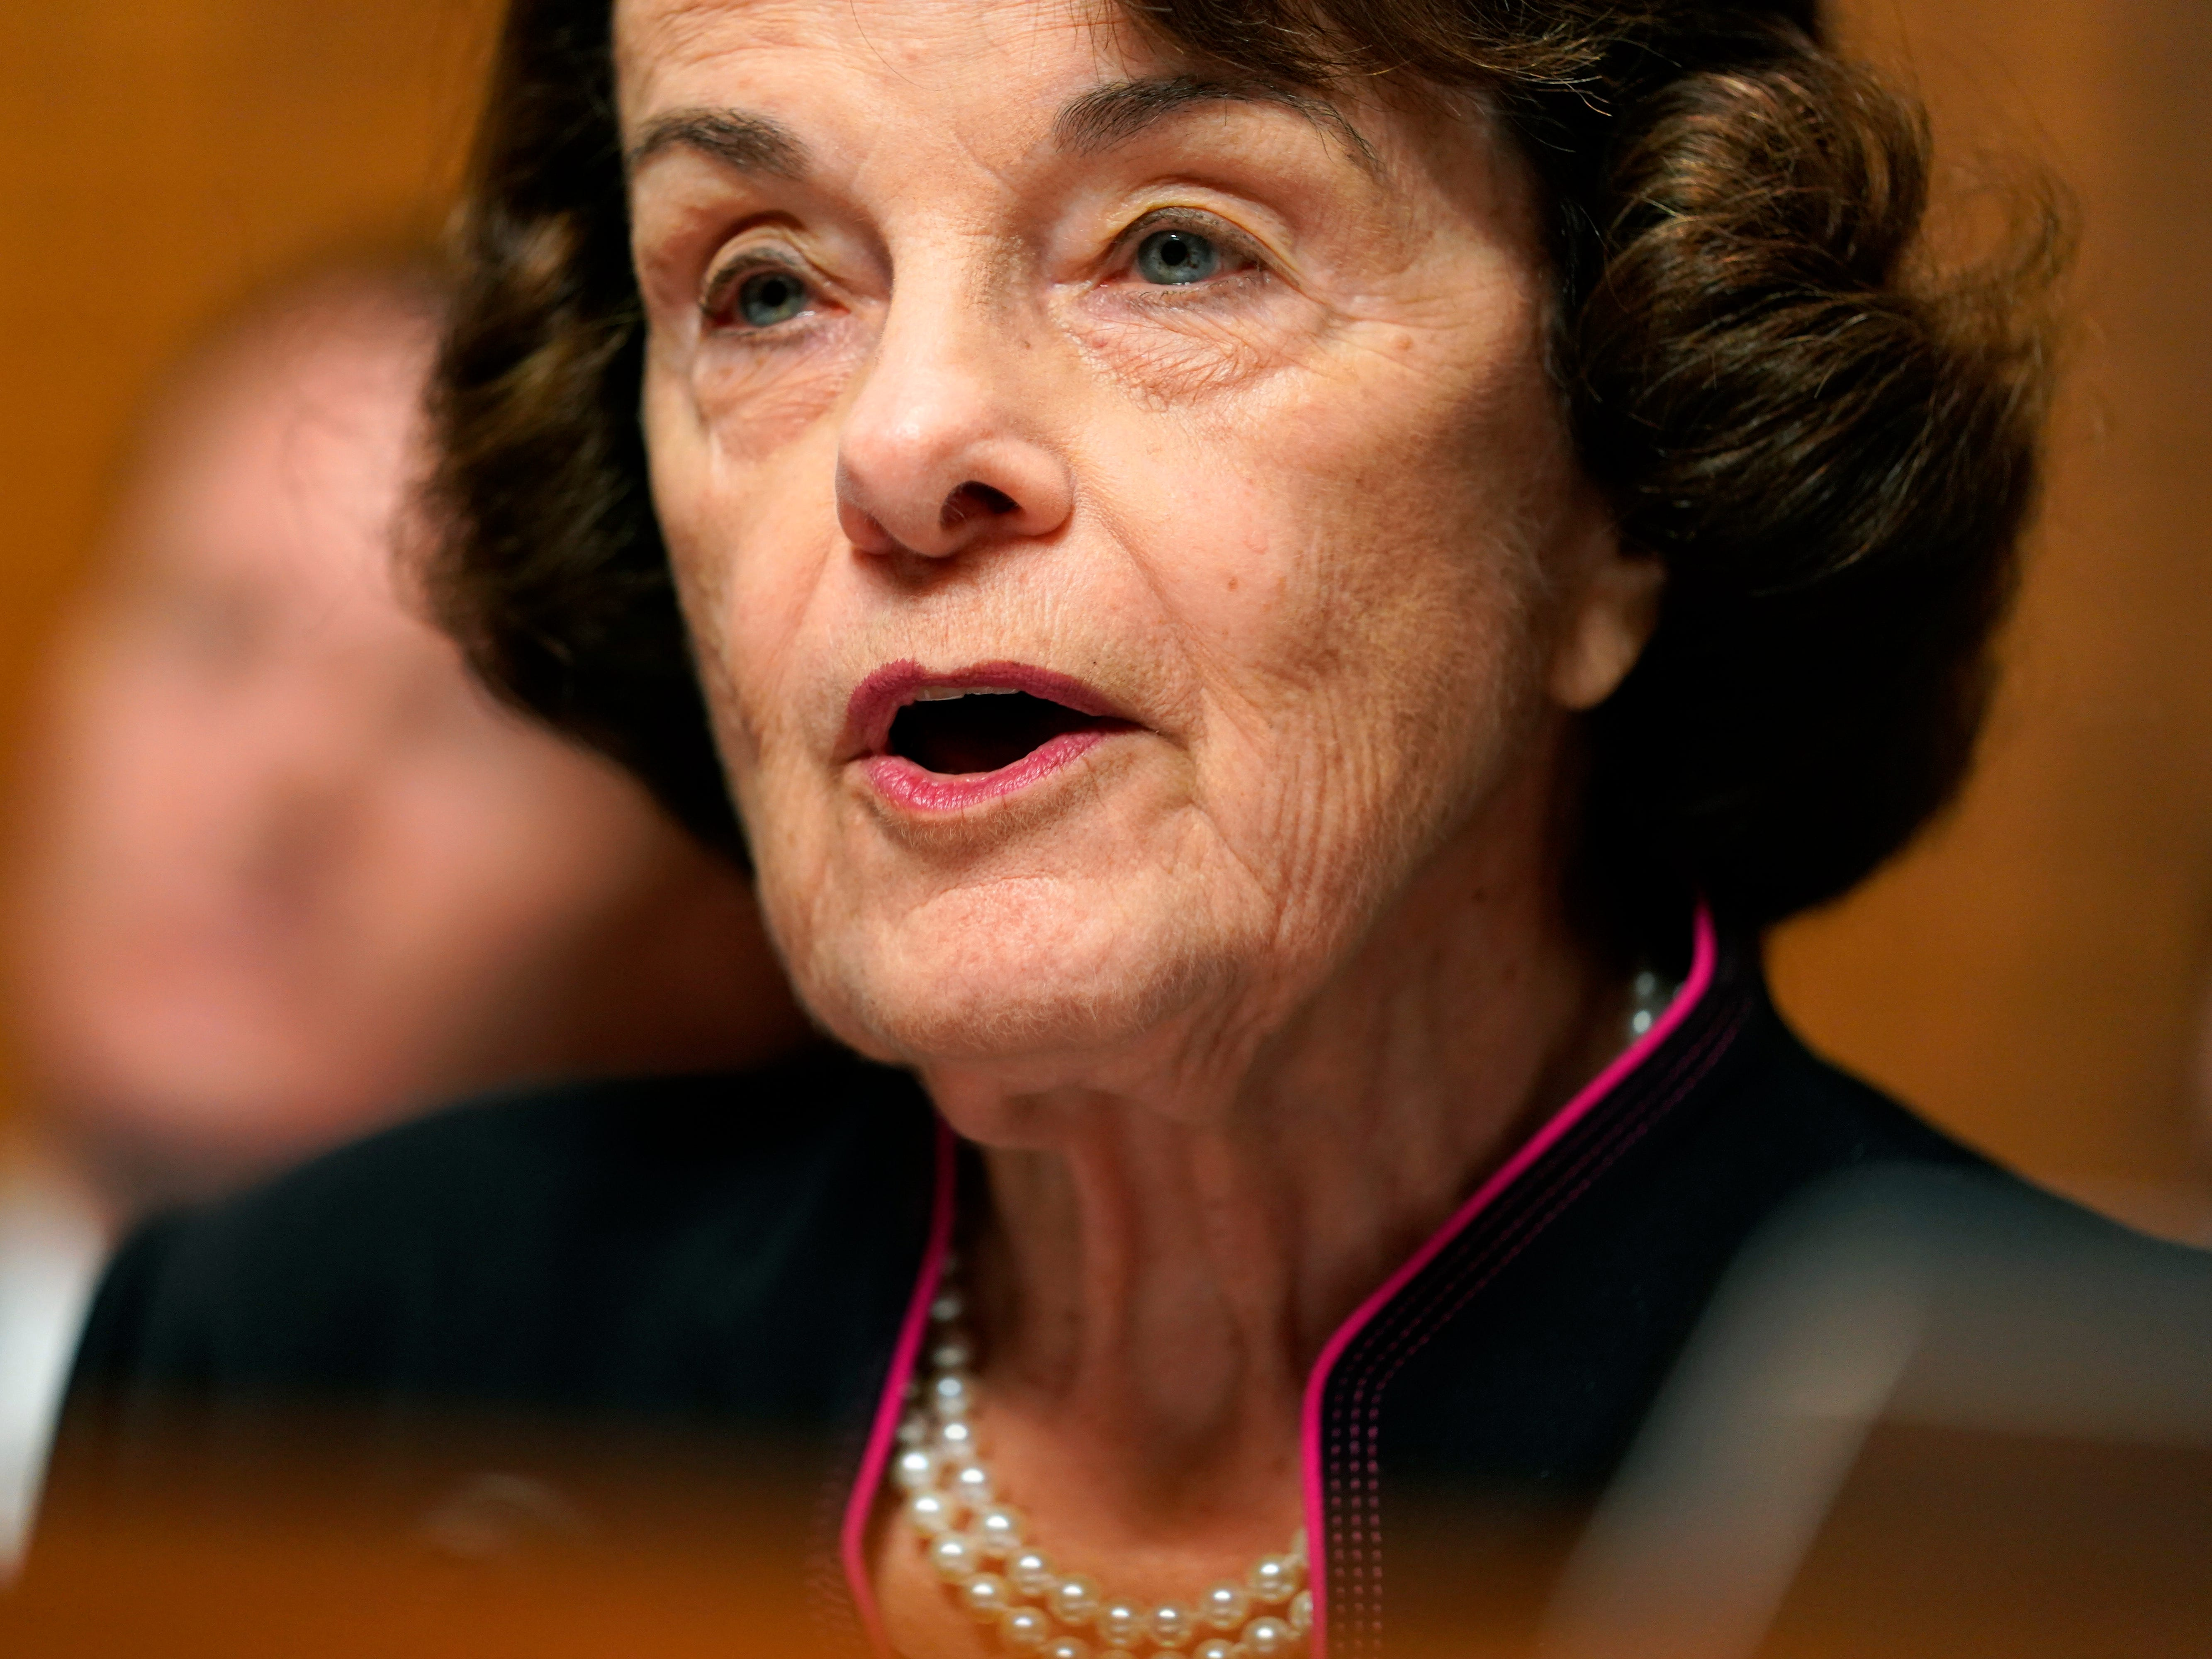 epa07051088 Sen. Dianne Feinstein, D-Calif., the ranking member, speaks before Christine Blasey Ford testifies in the Senate Judiciary Committee hearing on the nomination of Brett Kavanaugh to be an associate justice of the Supreme Court of the United States, on Capitol Hill in Washington, DC, USA, 27 September 2018. US President Donald J. Trump's nominee to be a US Supreme Court associate justice Brett Kavanaugh is in a tumultuous confirmation process as multiple women have accused Kavanaugh of sexual misconduct.  EPA-EFE/ANDREW HARNIK / POOL ORG XMIT: DCAH208